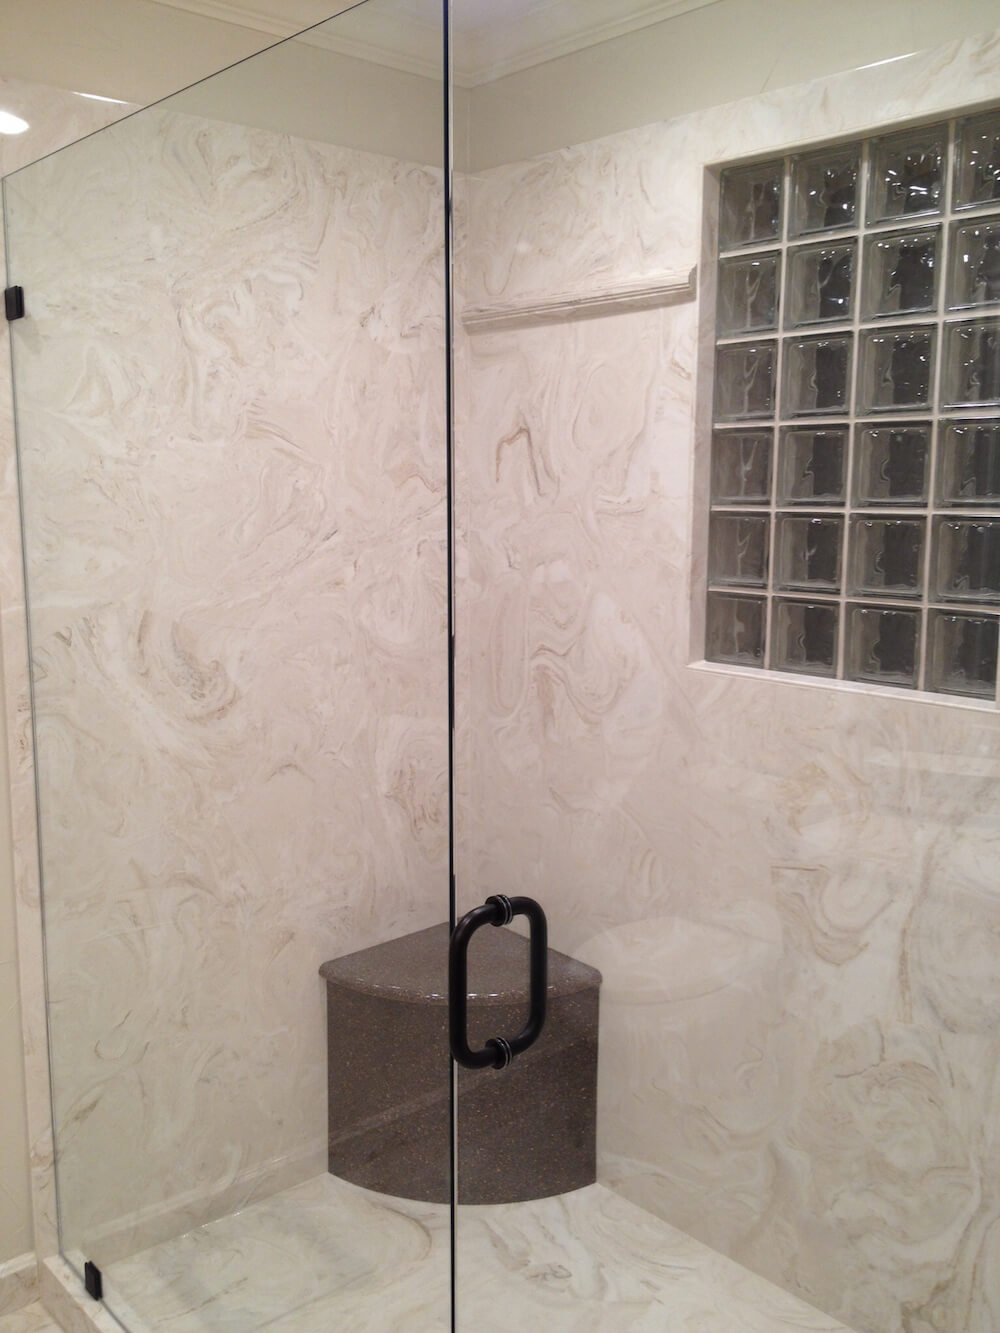 Cultured Marble Shower Pan Costs And Cultured Marble Tub Surround Prices  Vary. See The Averages